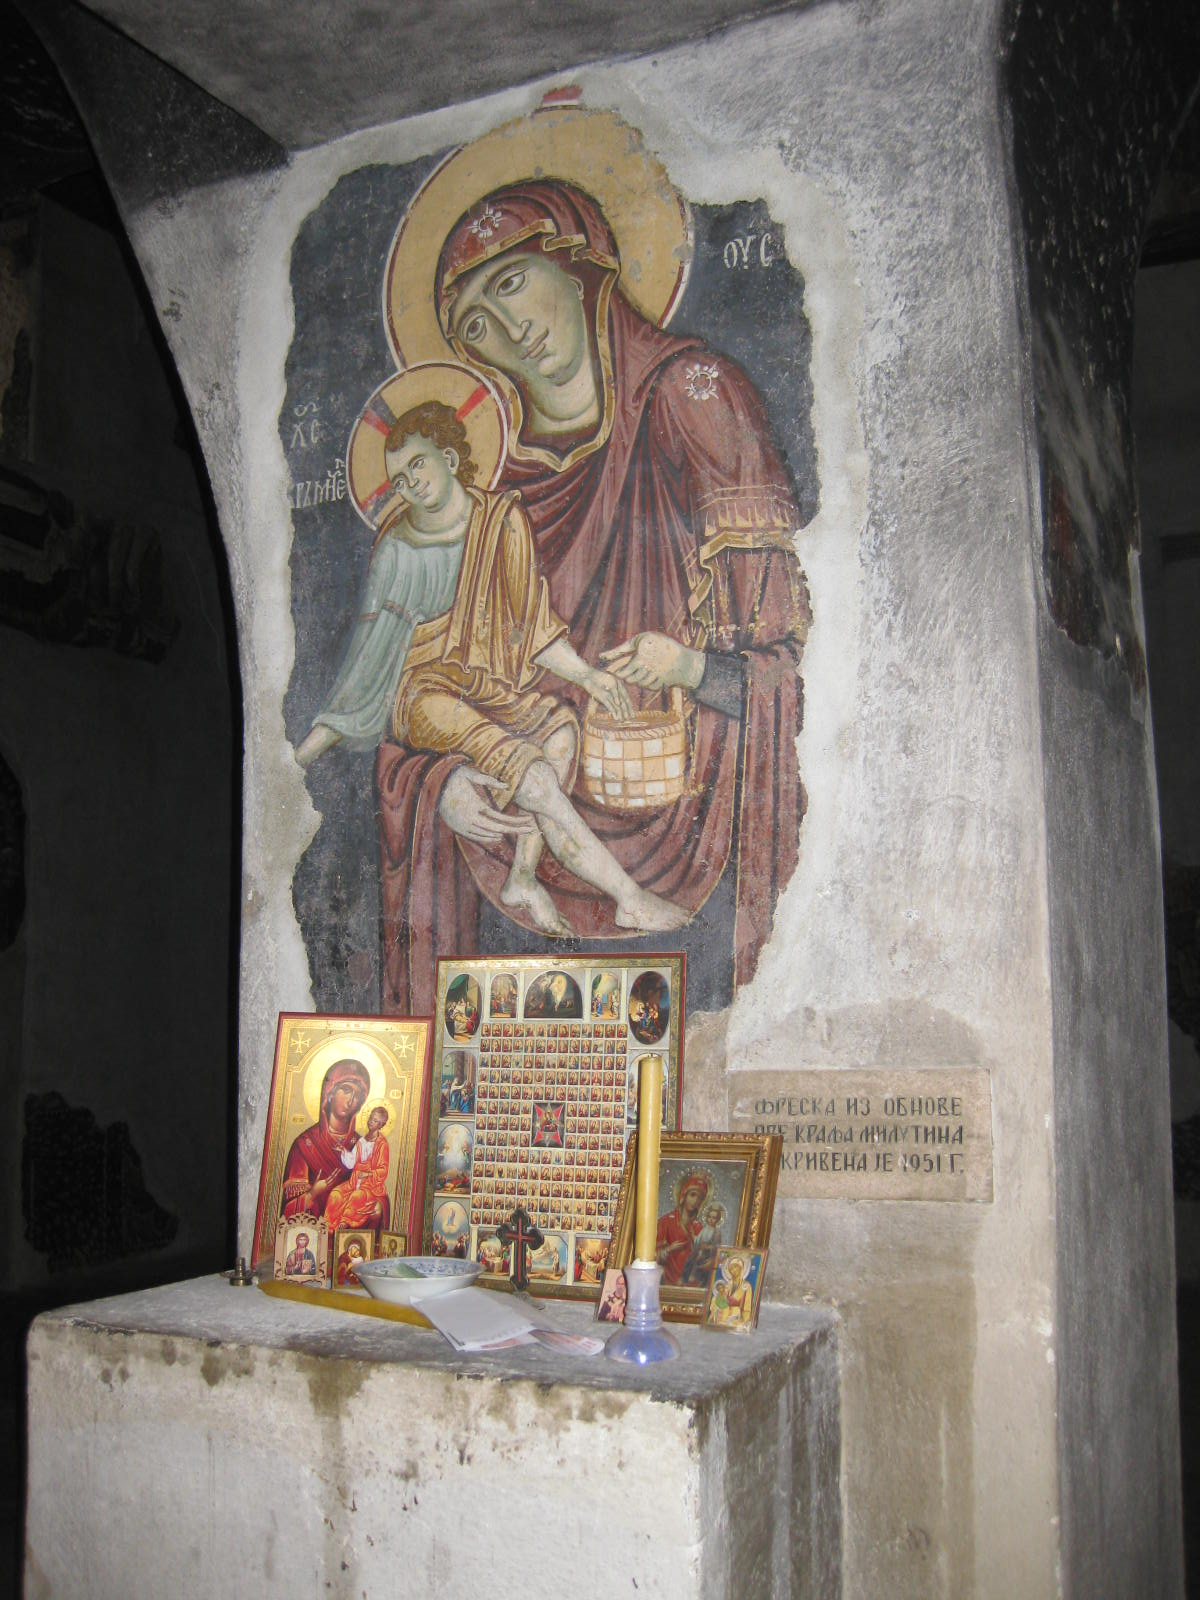 Fresco on a pillar inside the church with an offering tray and icons. Church of Our Lady of Ljevis,  Serbia dans immagini sacre